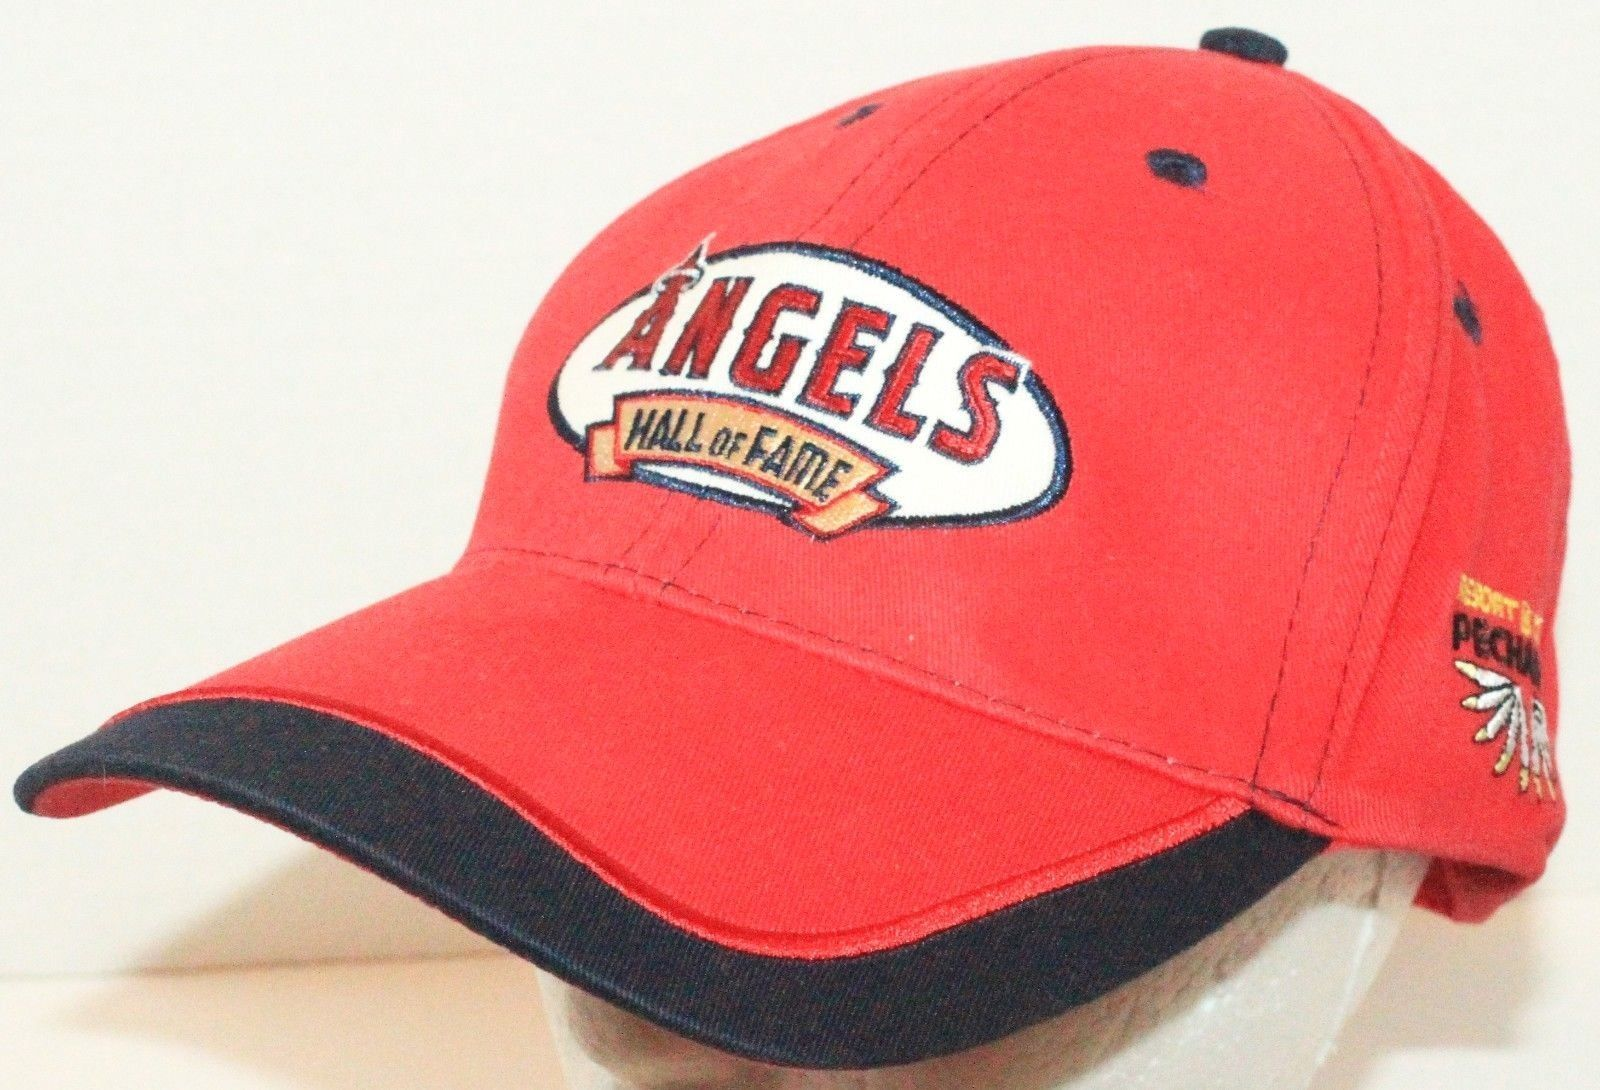 LOS ANGELES ANAHEIM ANGELS - HALL OF FAME PECHANGA CASINO RED CAP HAT ONE SIZE - $8.88